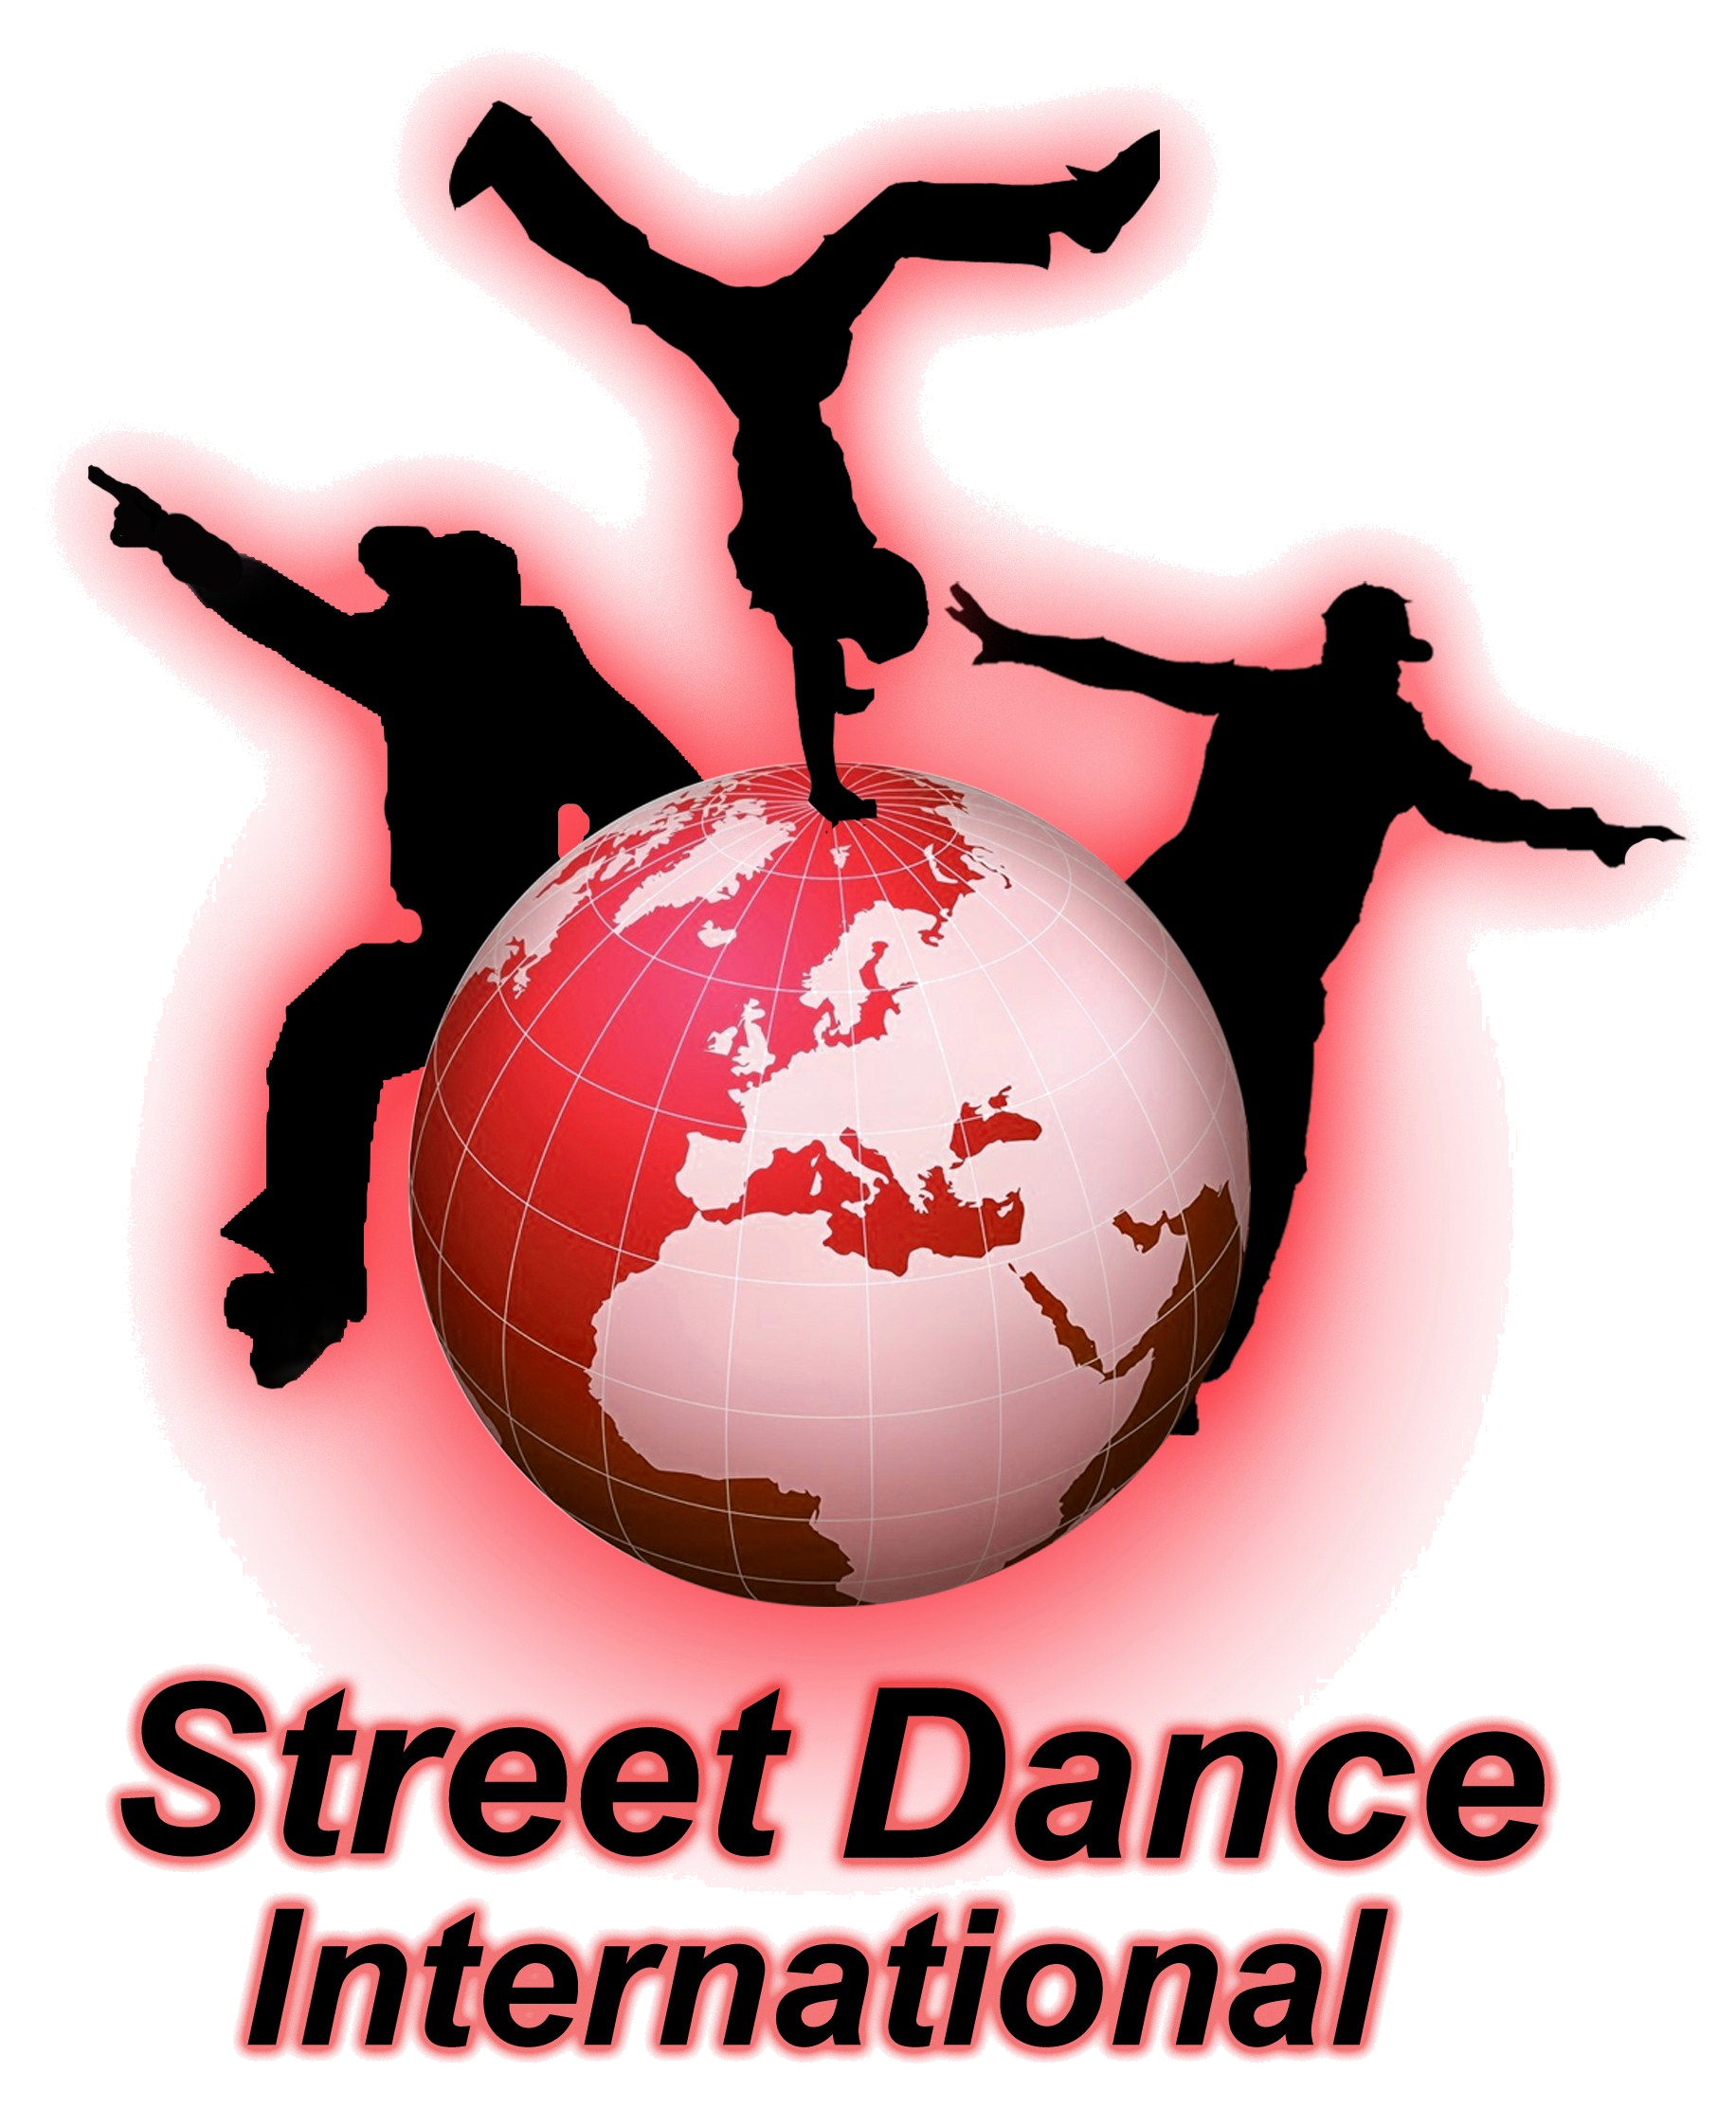 street dance international.png